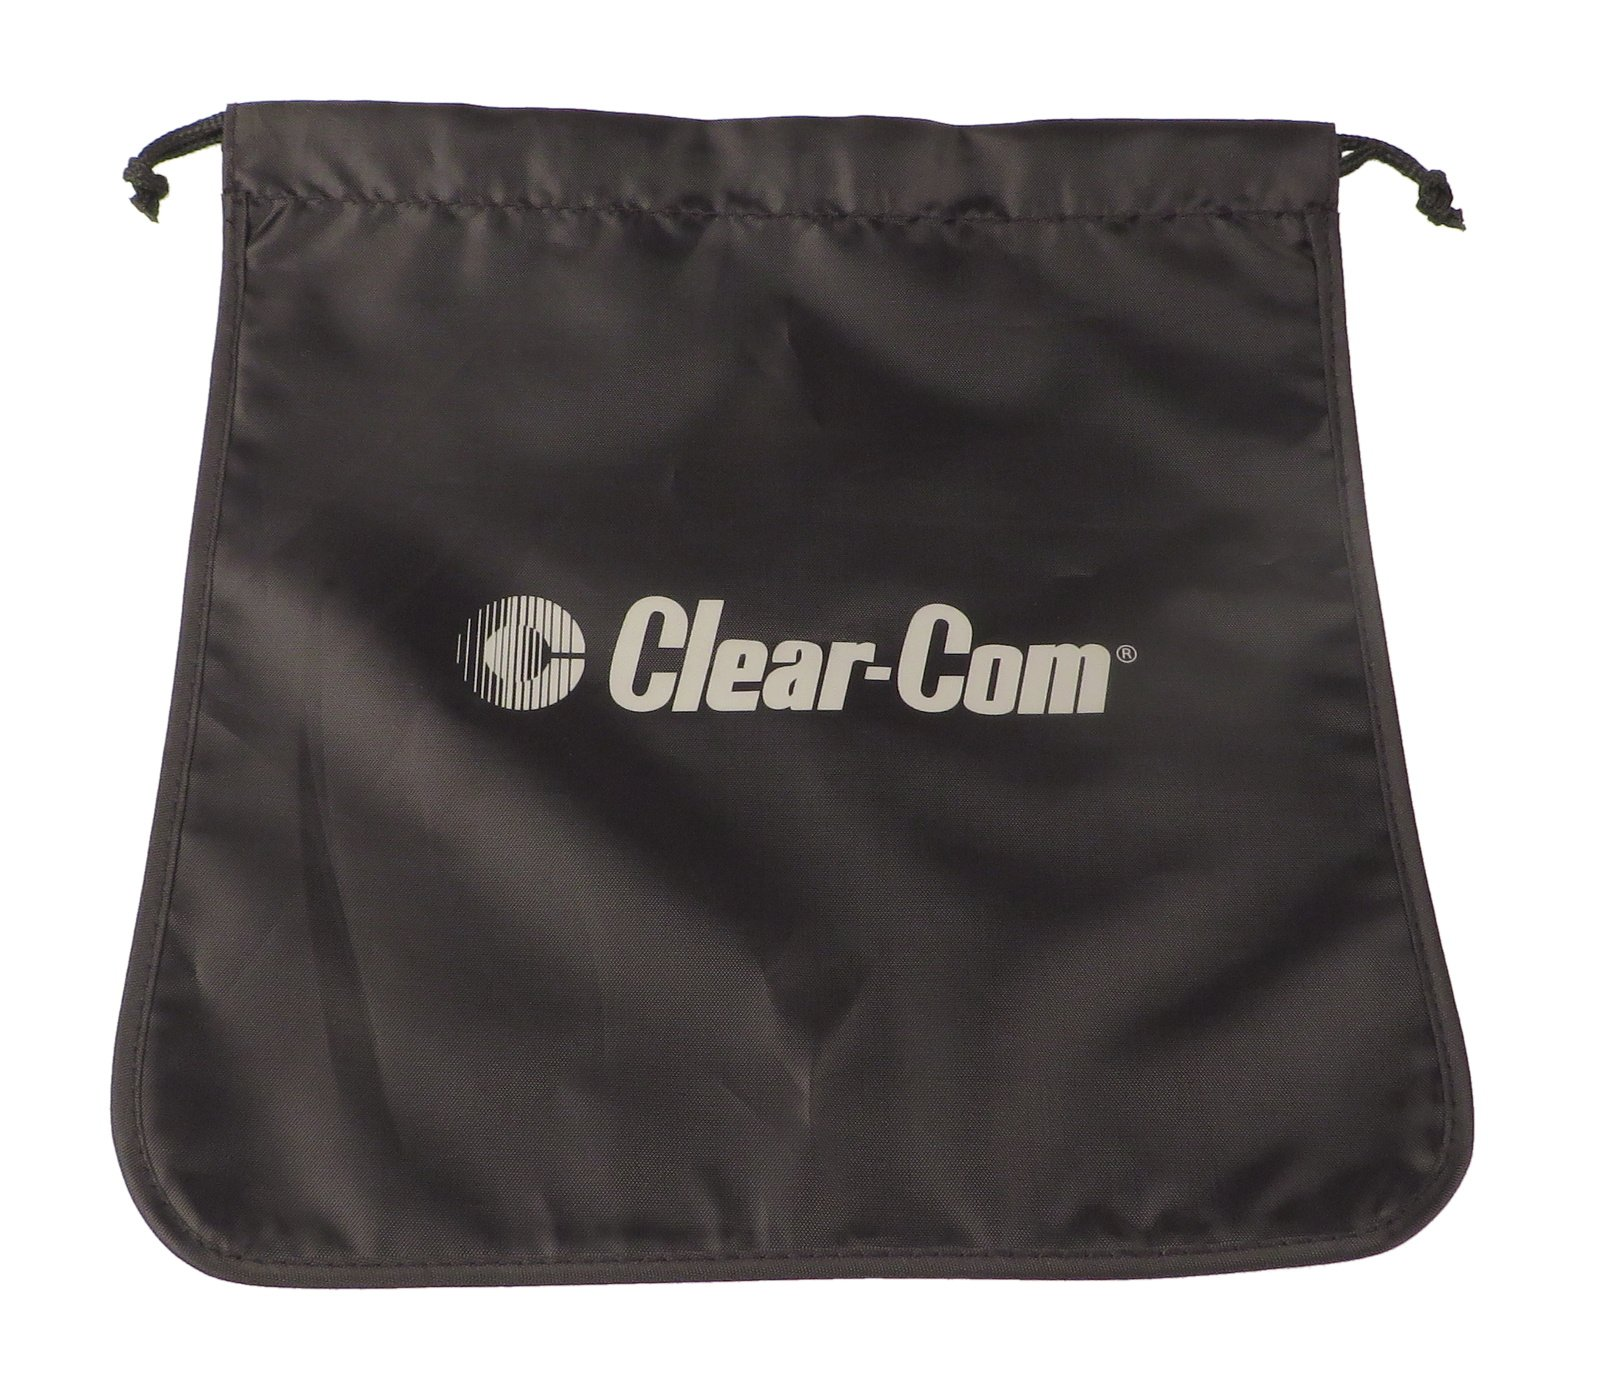 Headset Bag for CC-300 and CC-400